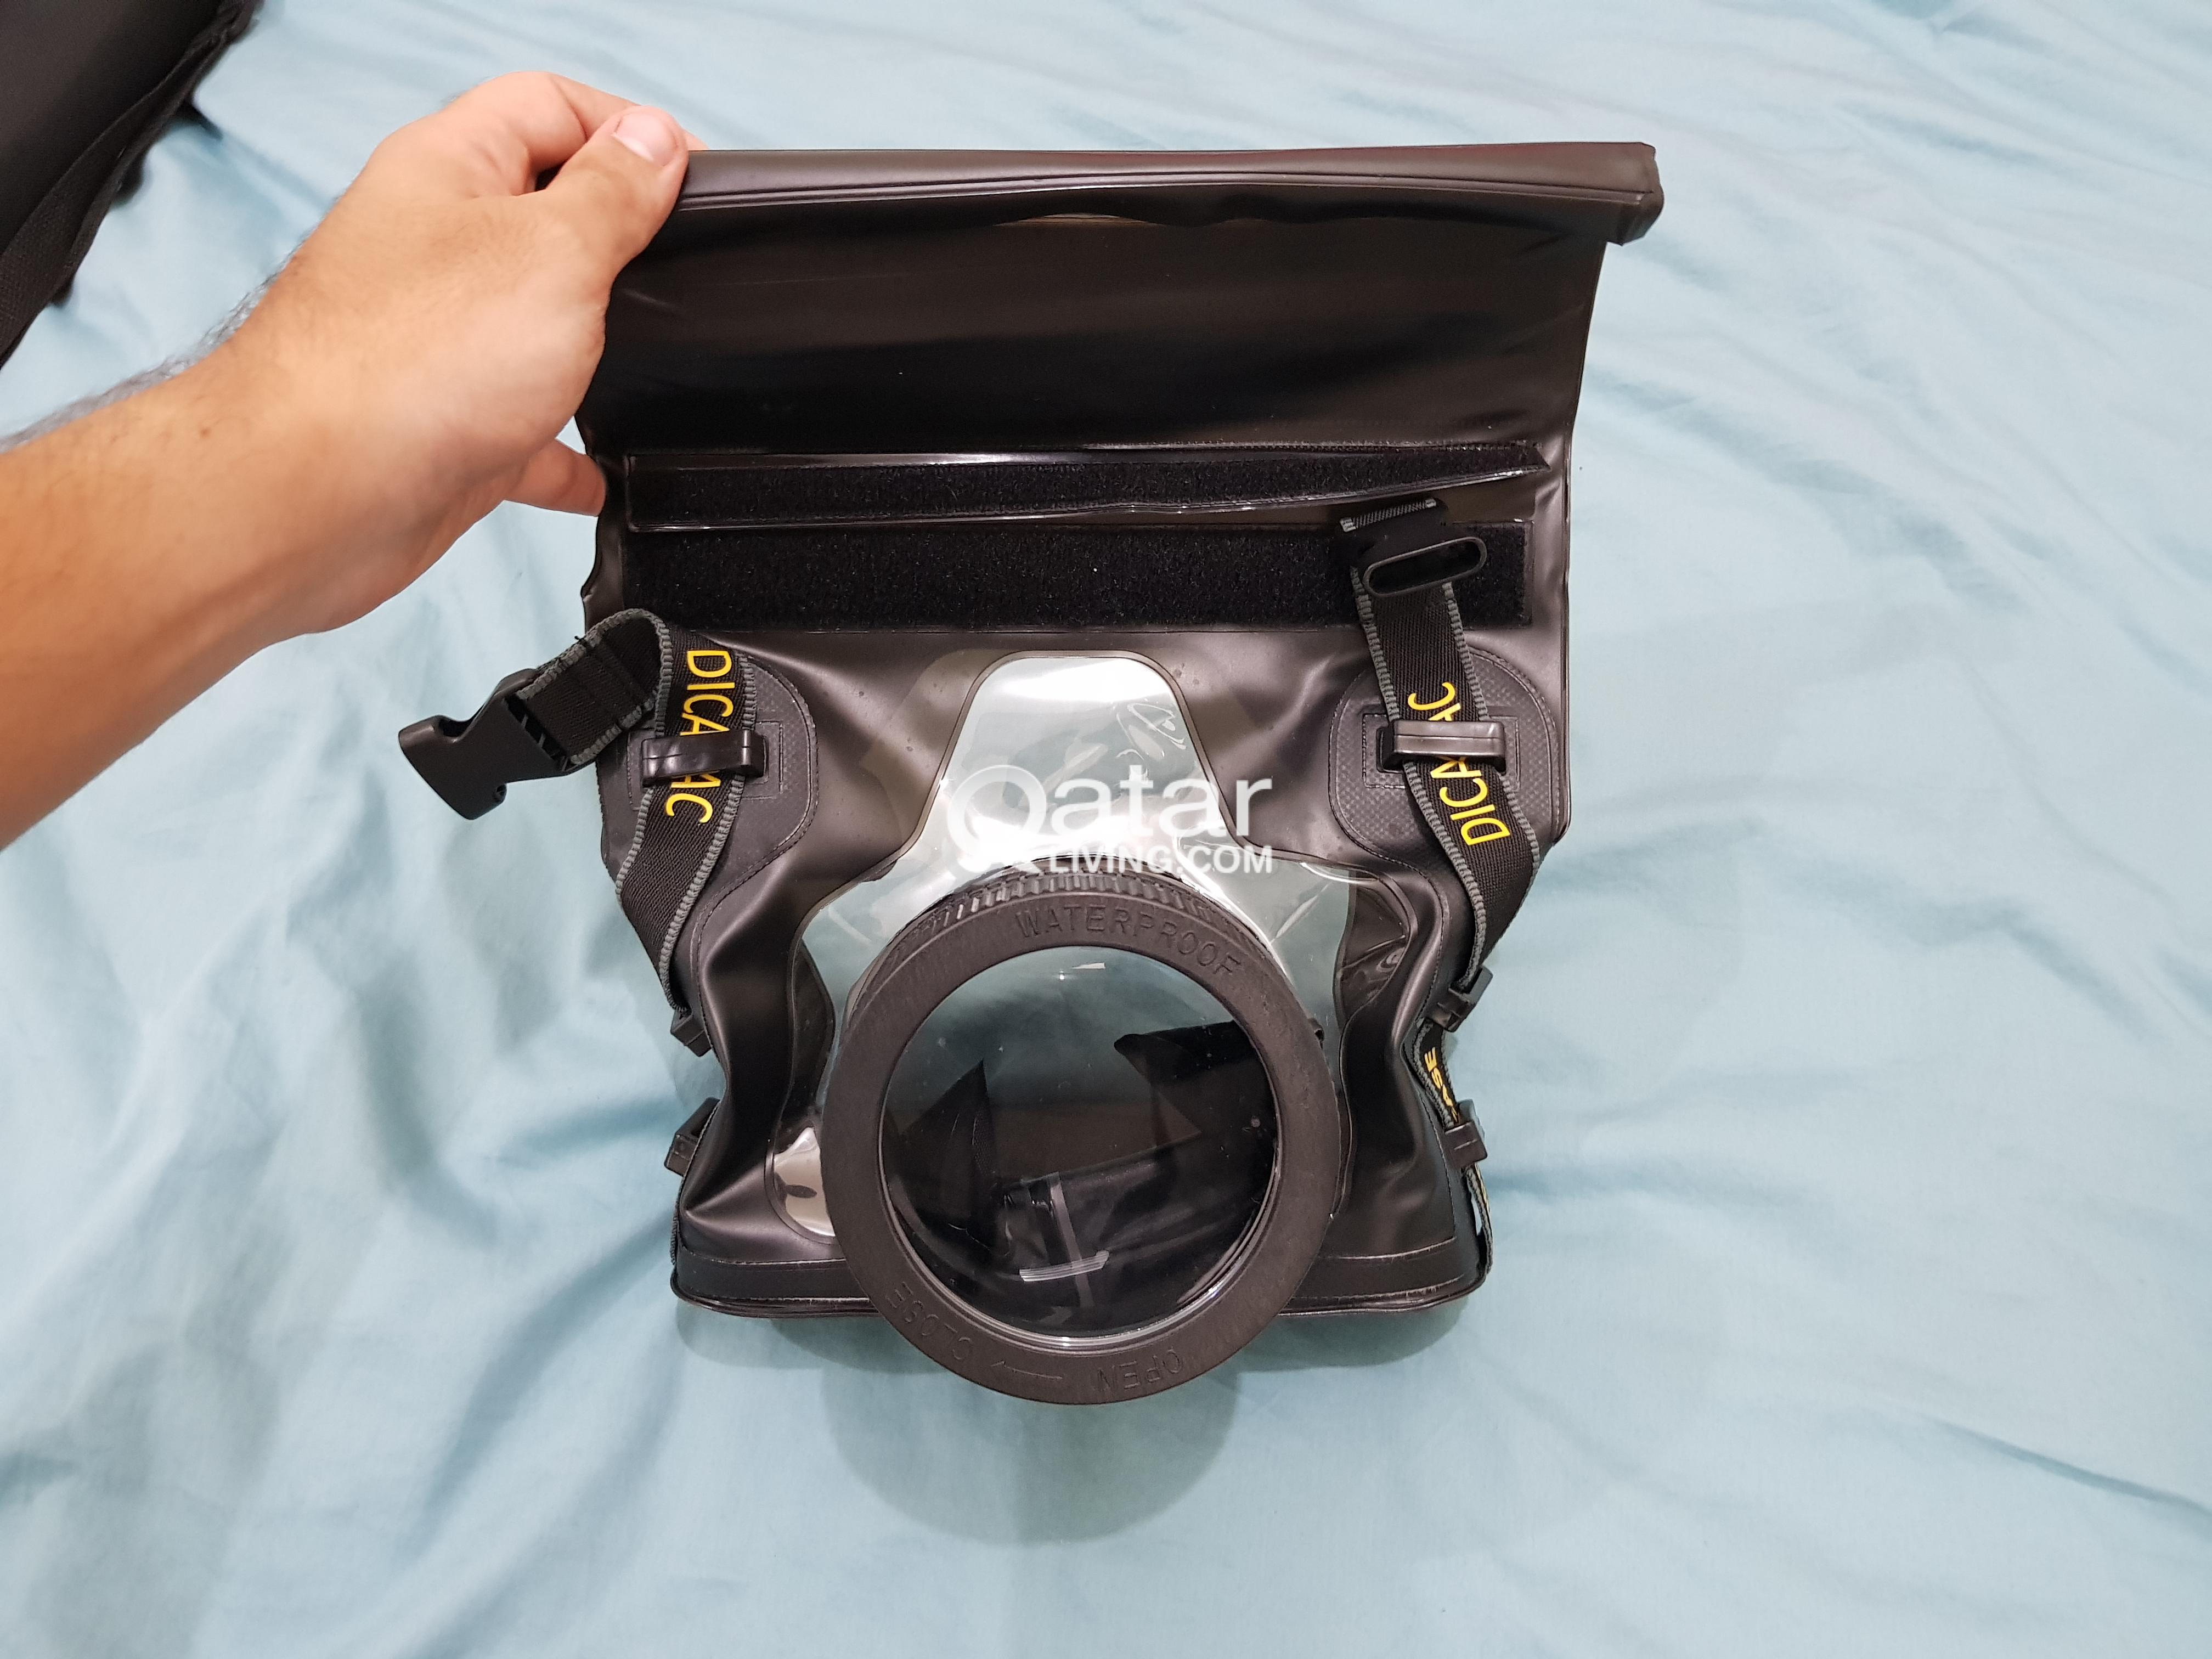 Underwater Case Cover For Dslr Cameras Qatar Living Dicapac Wp S10 Waterproof Slr Title Information New All